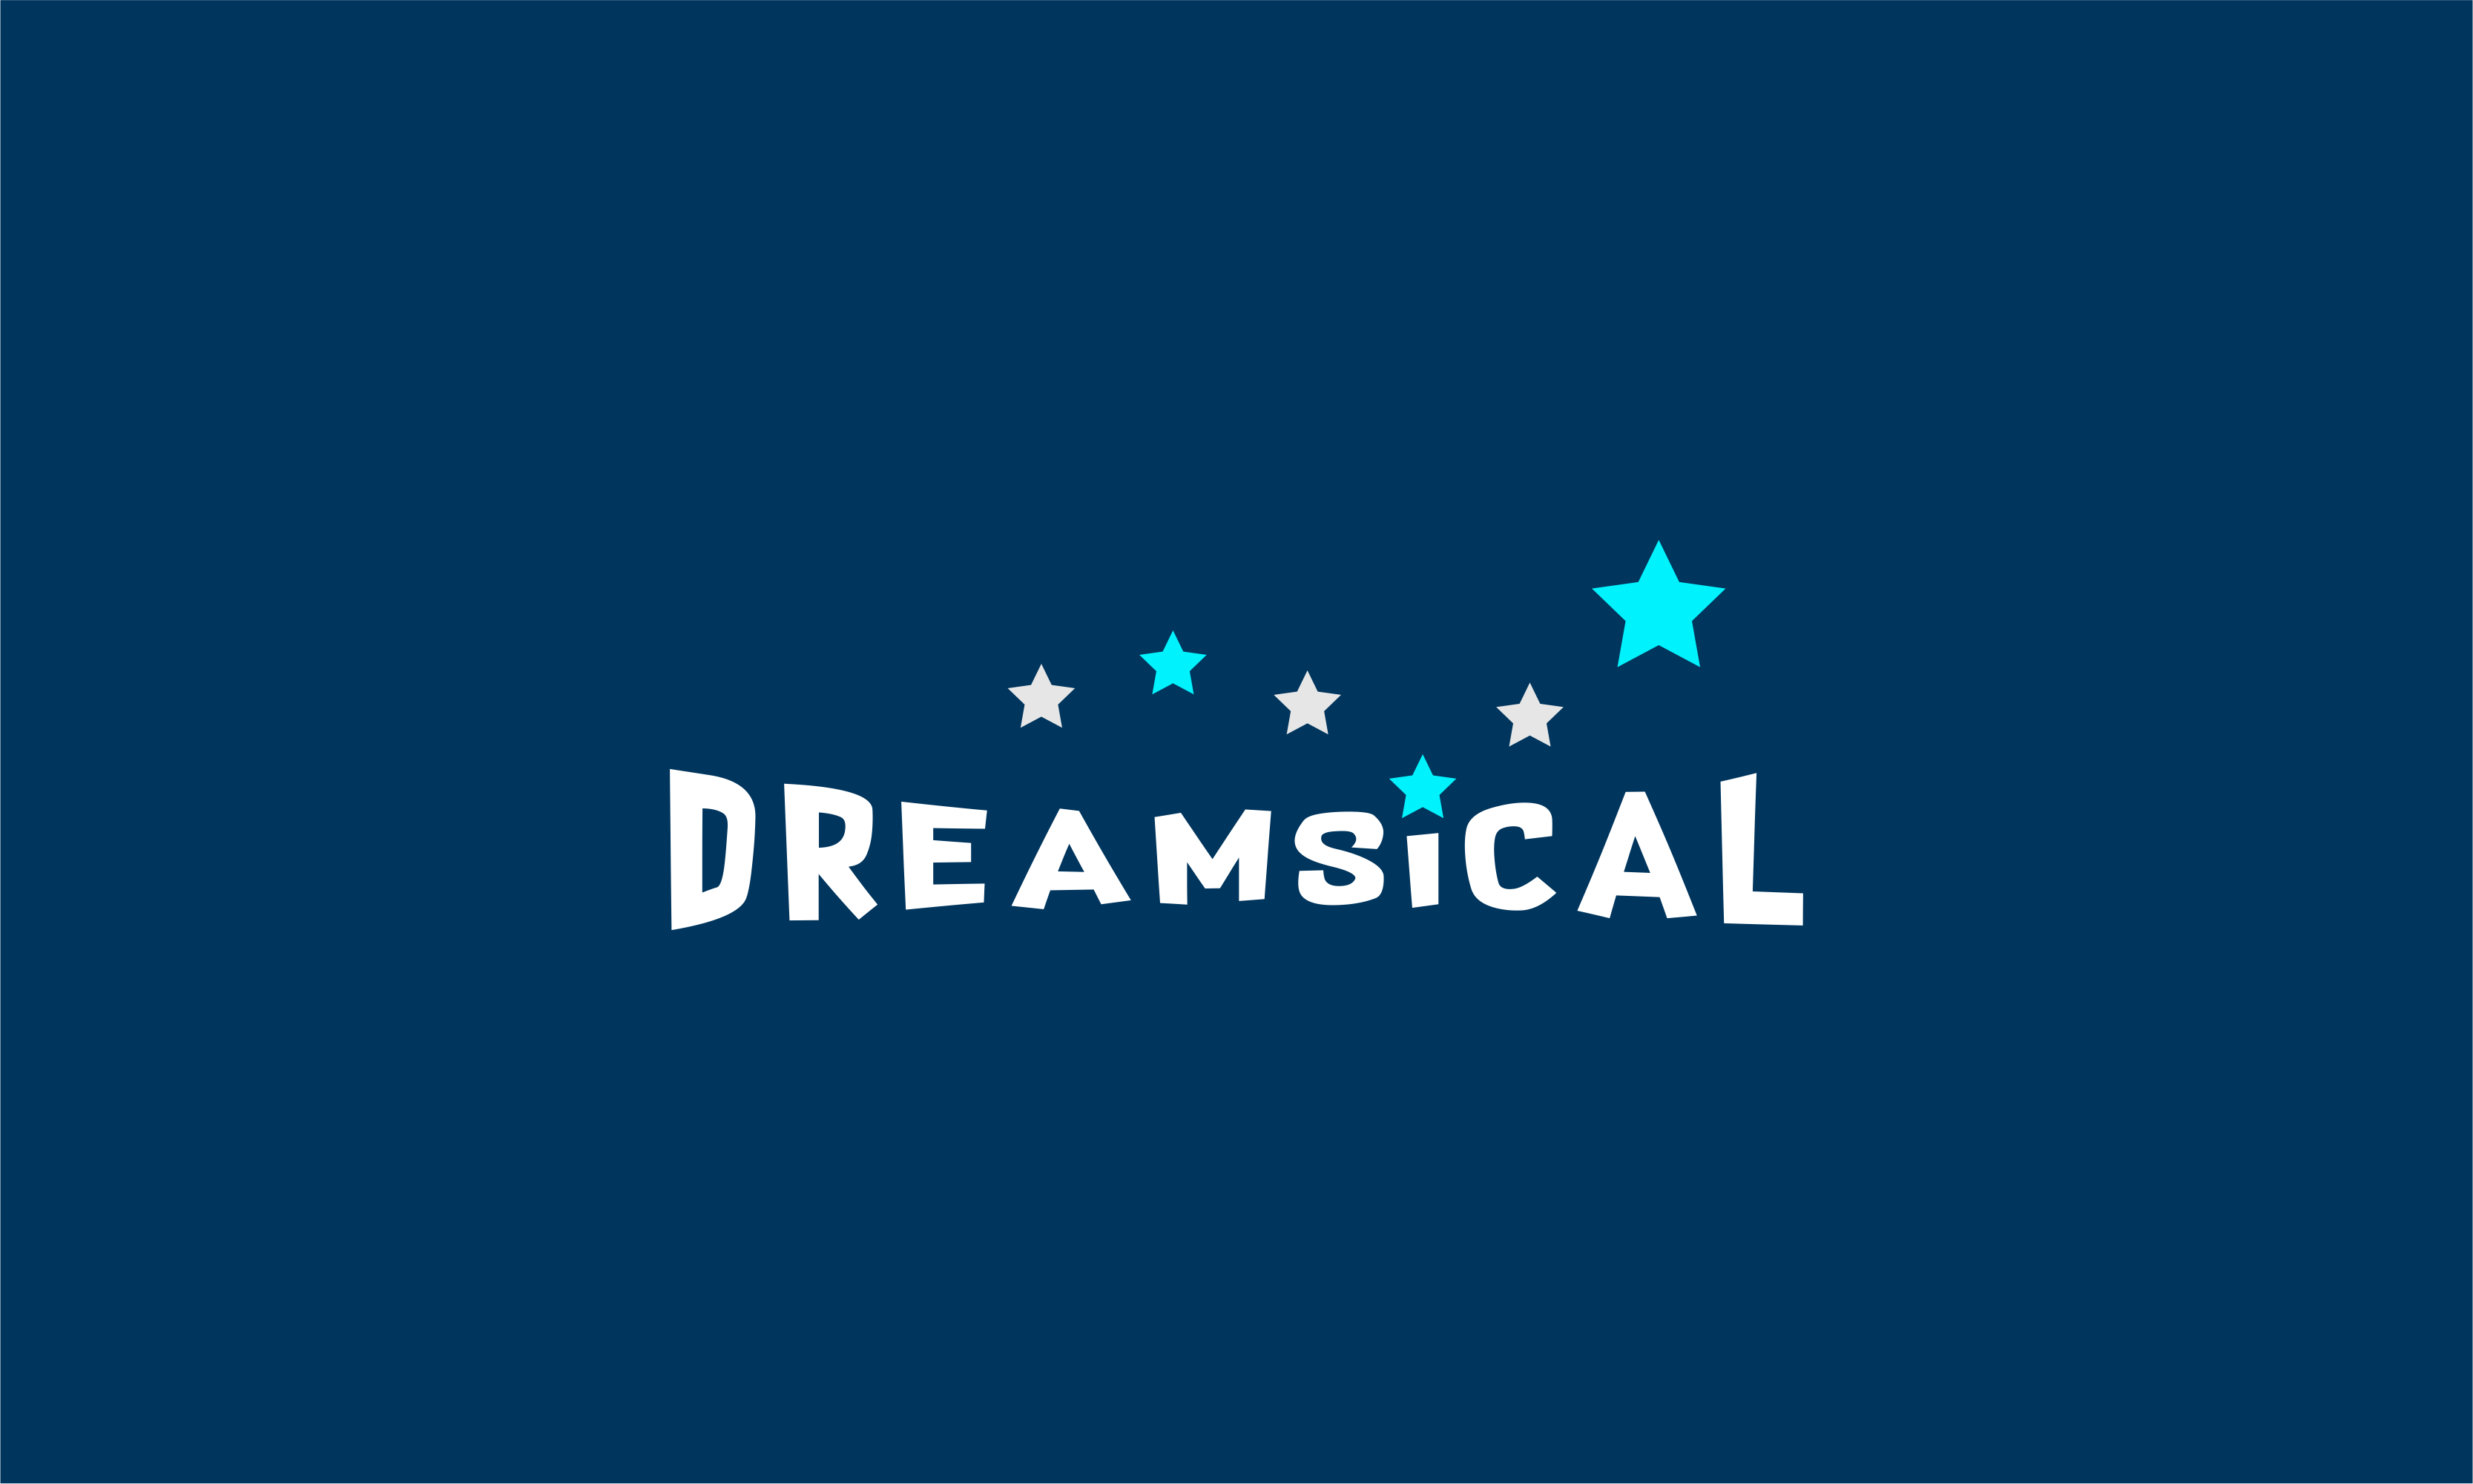 dreamsical.com